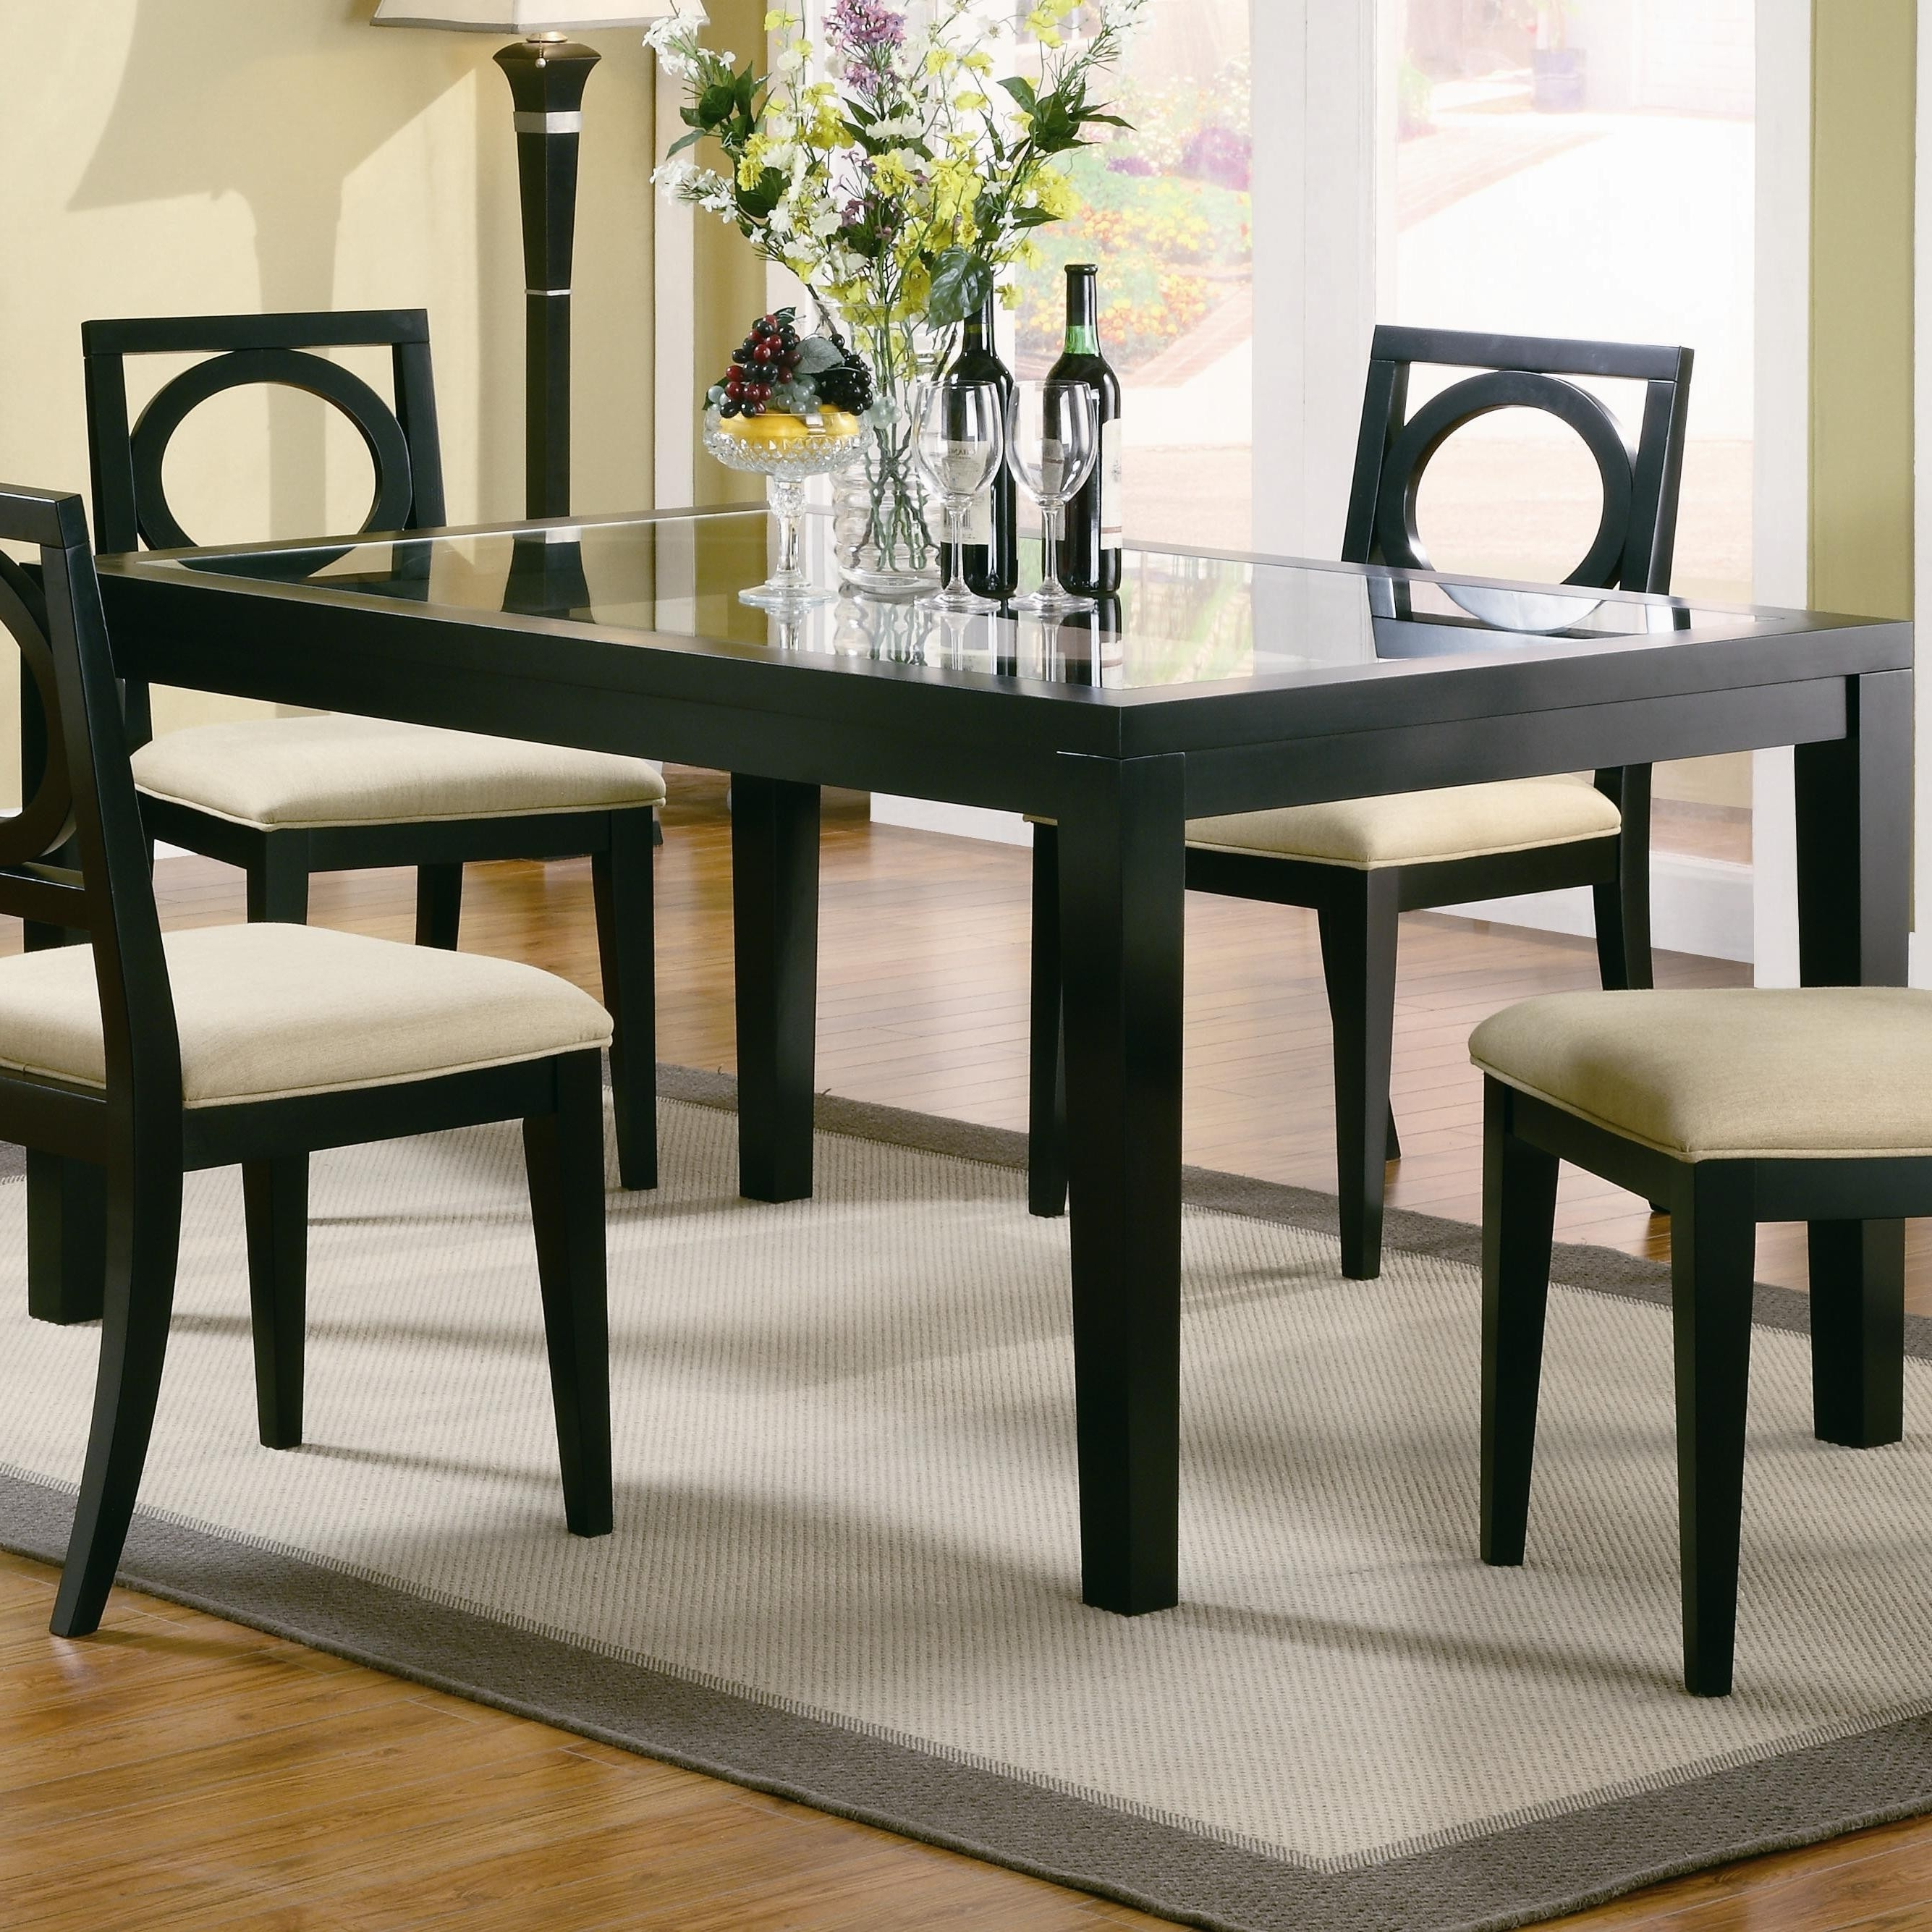 Rectangular Dining Tables Sets For Widely Used Glass Dining Room Sets Plans – Catpillow (View 18 of 25)